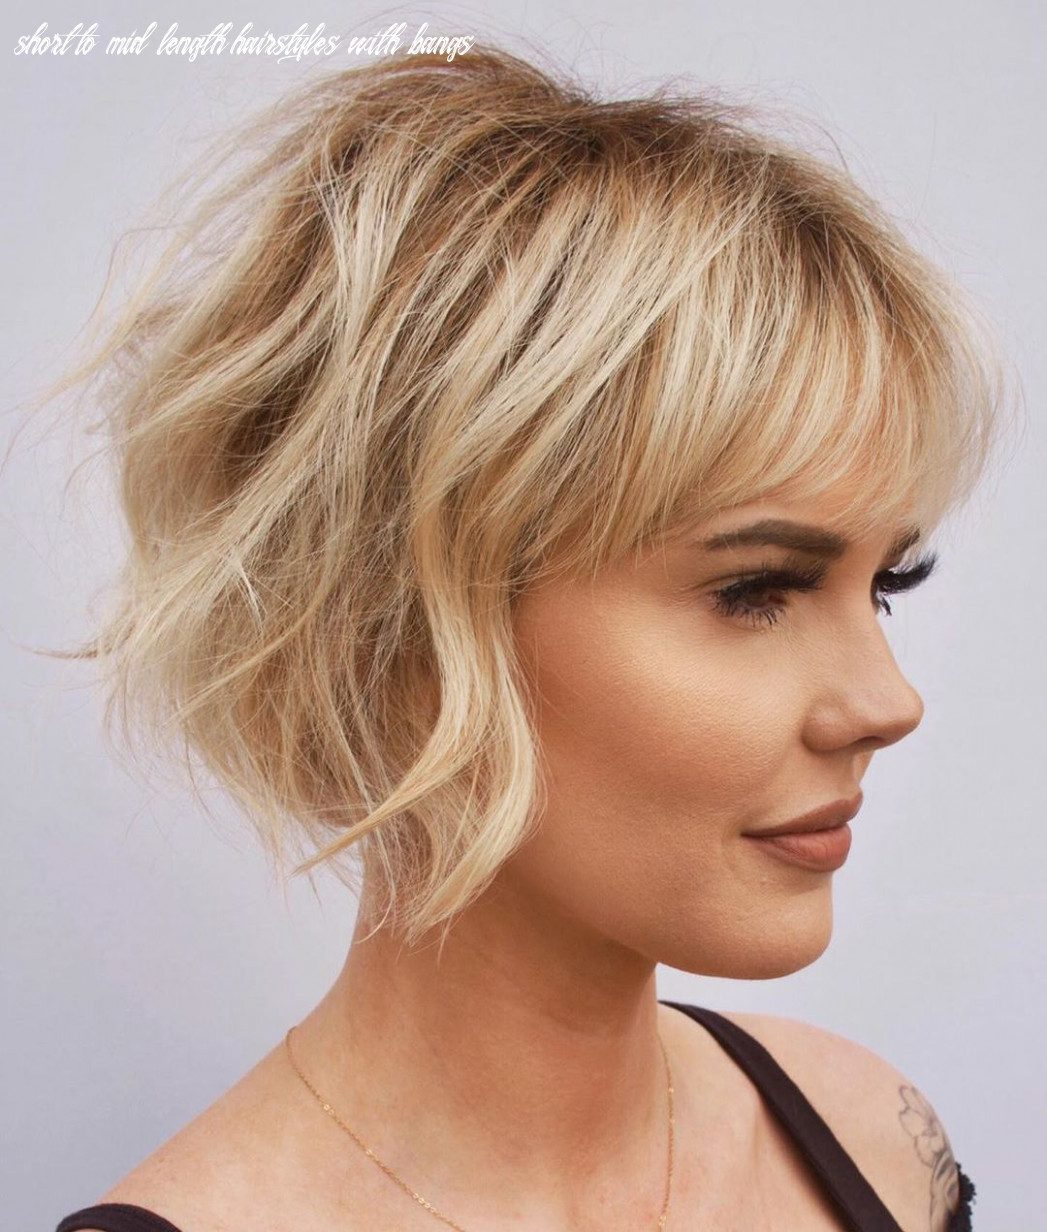 10 newest haircut ideas and haircut trends for 10 hair adviser short to mid length hairstyles with bangs